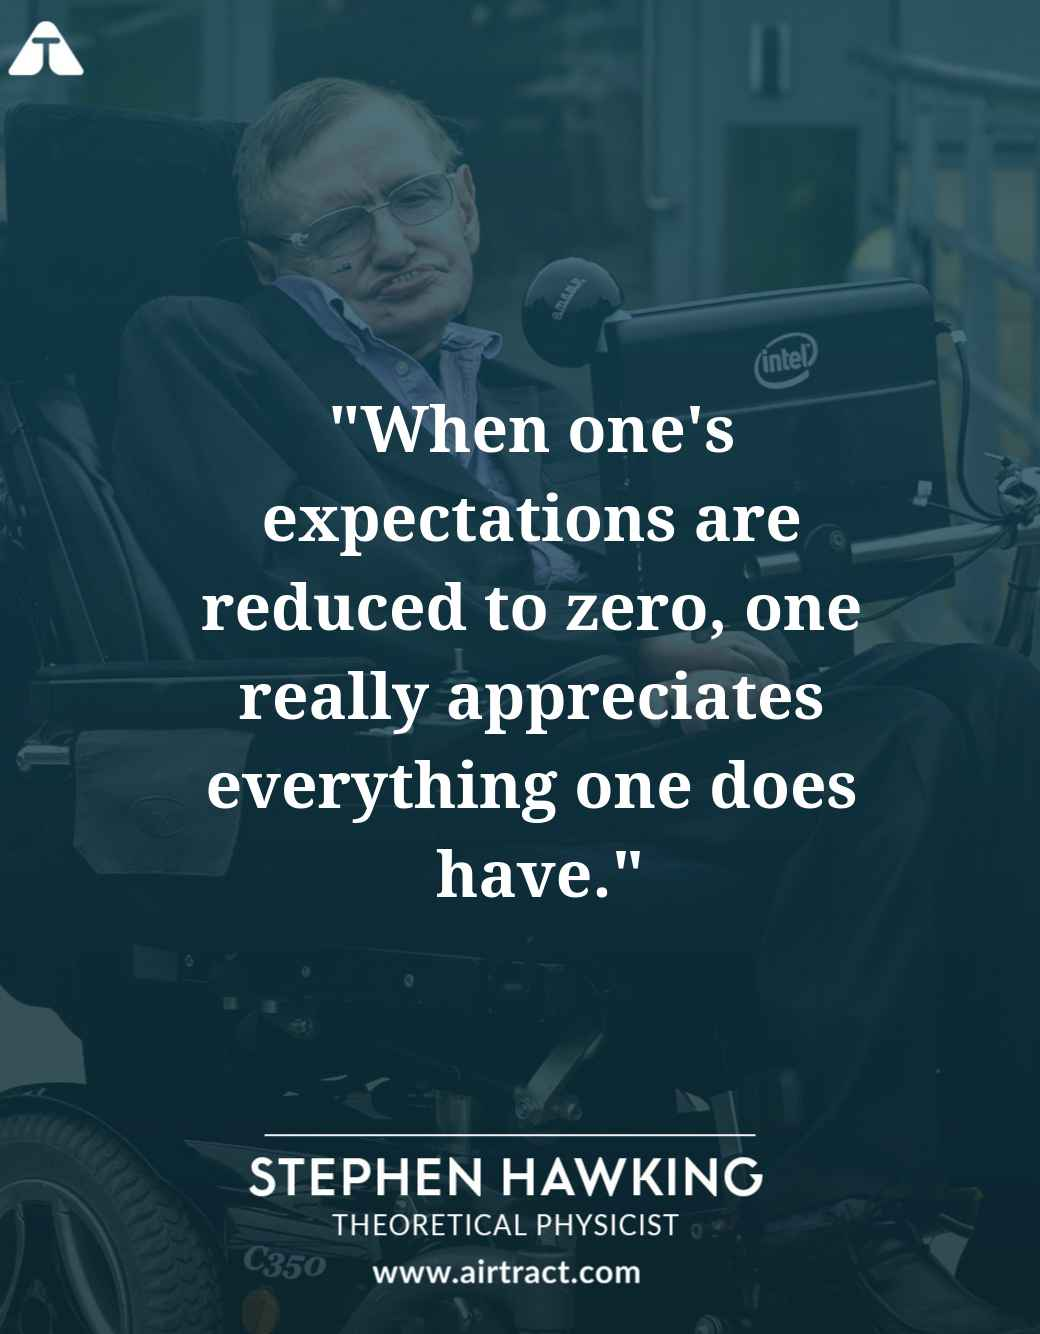 Stephen Hawking Quotes | 15 Inspirational Stephen Hawking Quotes On Success Airtract